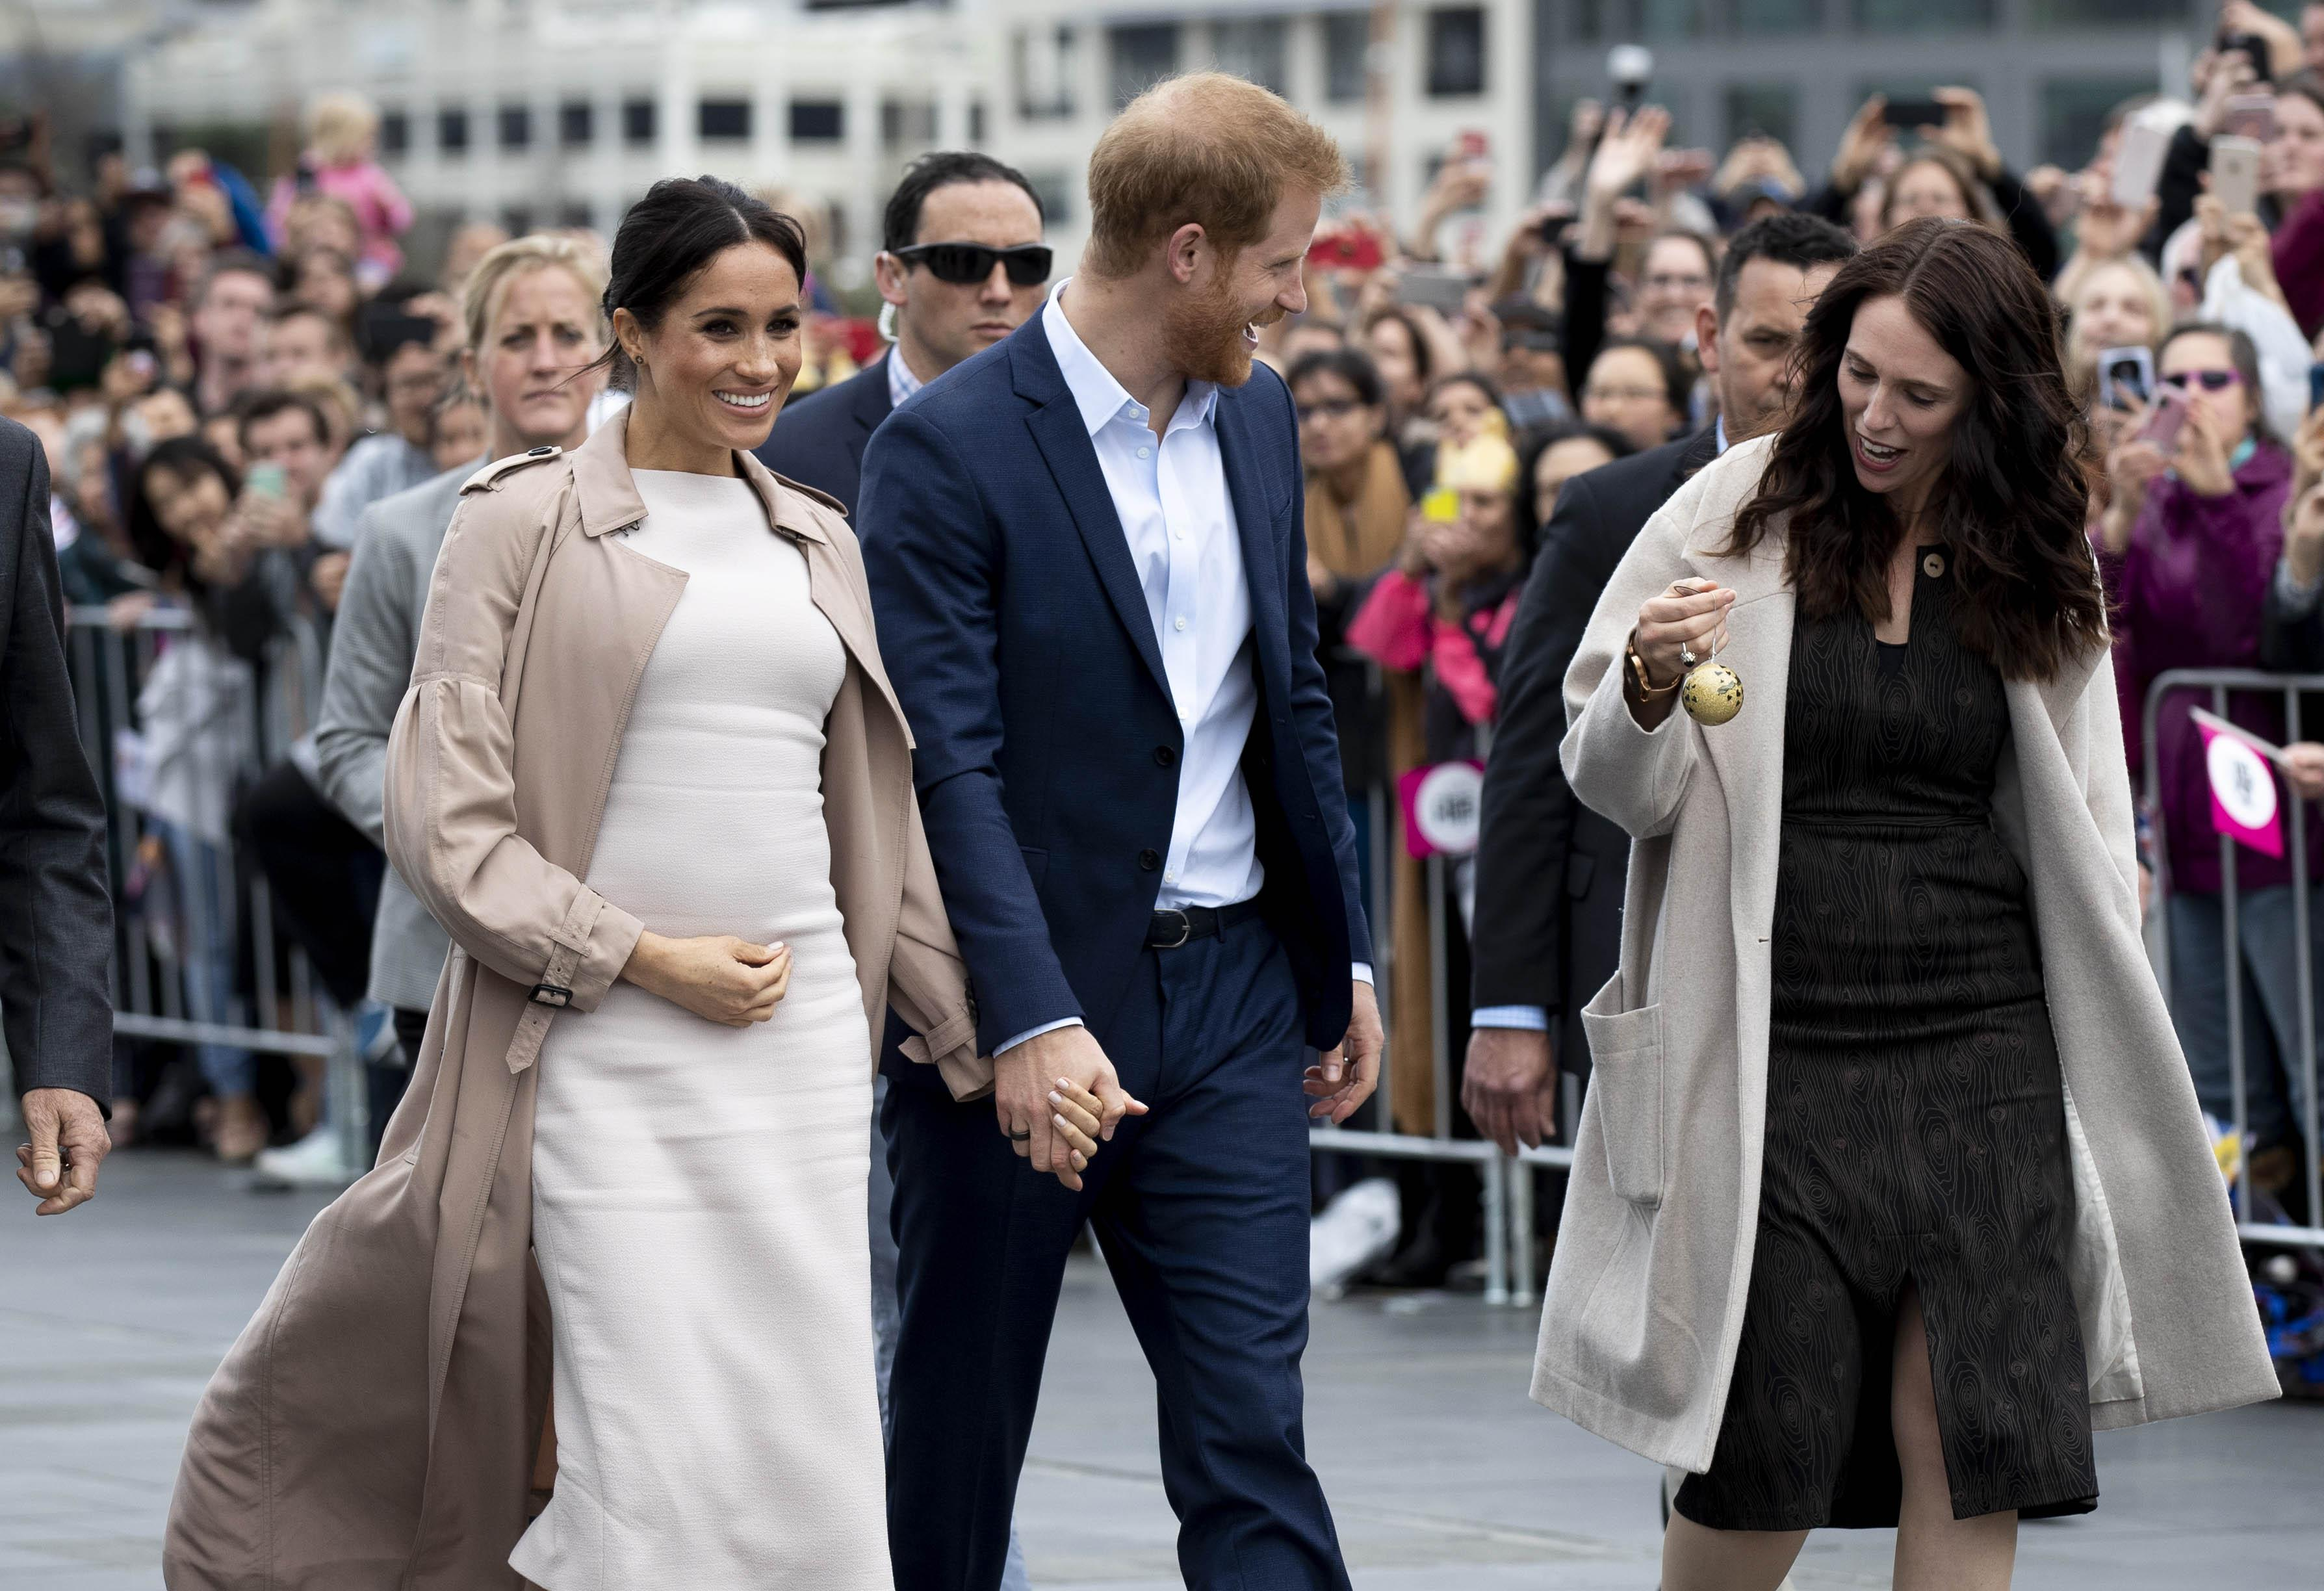 Meghan Markle's Due Date is a Lot Sooner than Everyone Expected